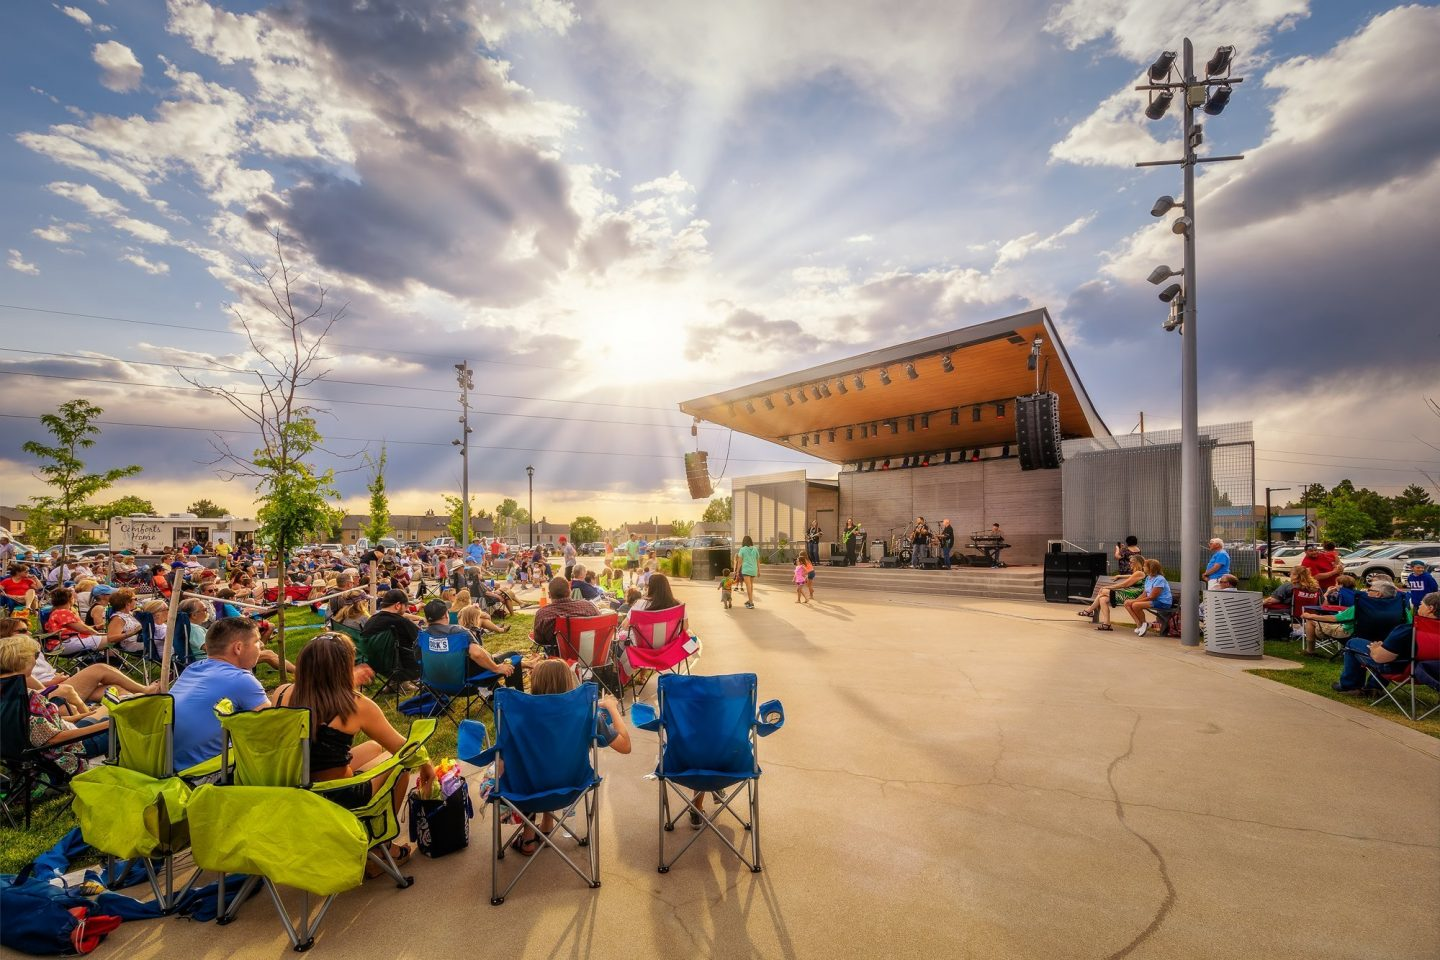 Crowd in chairs surrounding stage during performance at Discovery Park in Parker, CO.